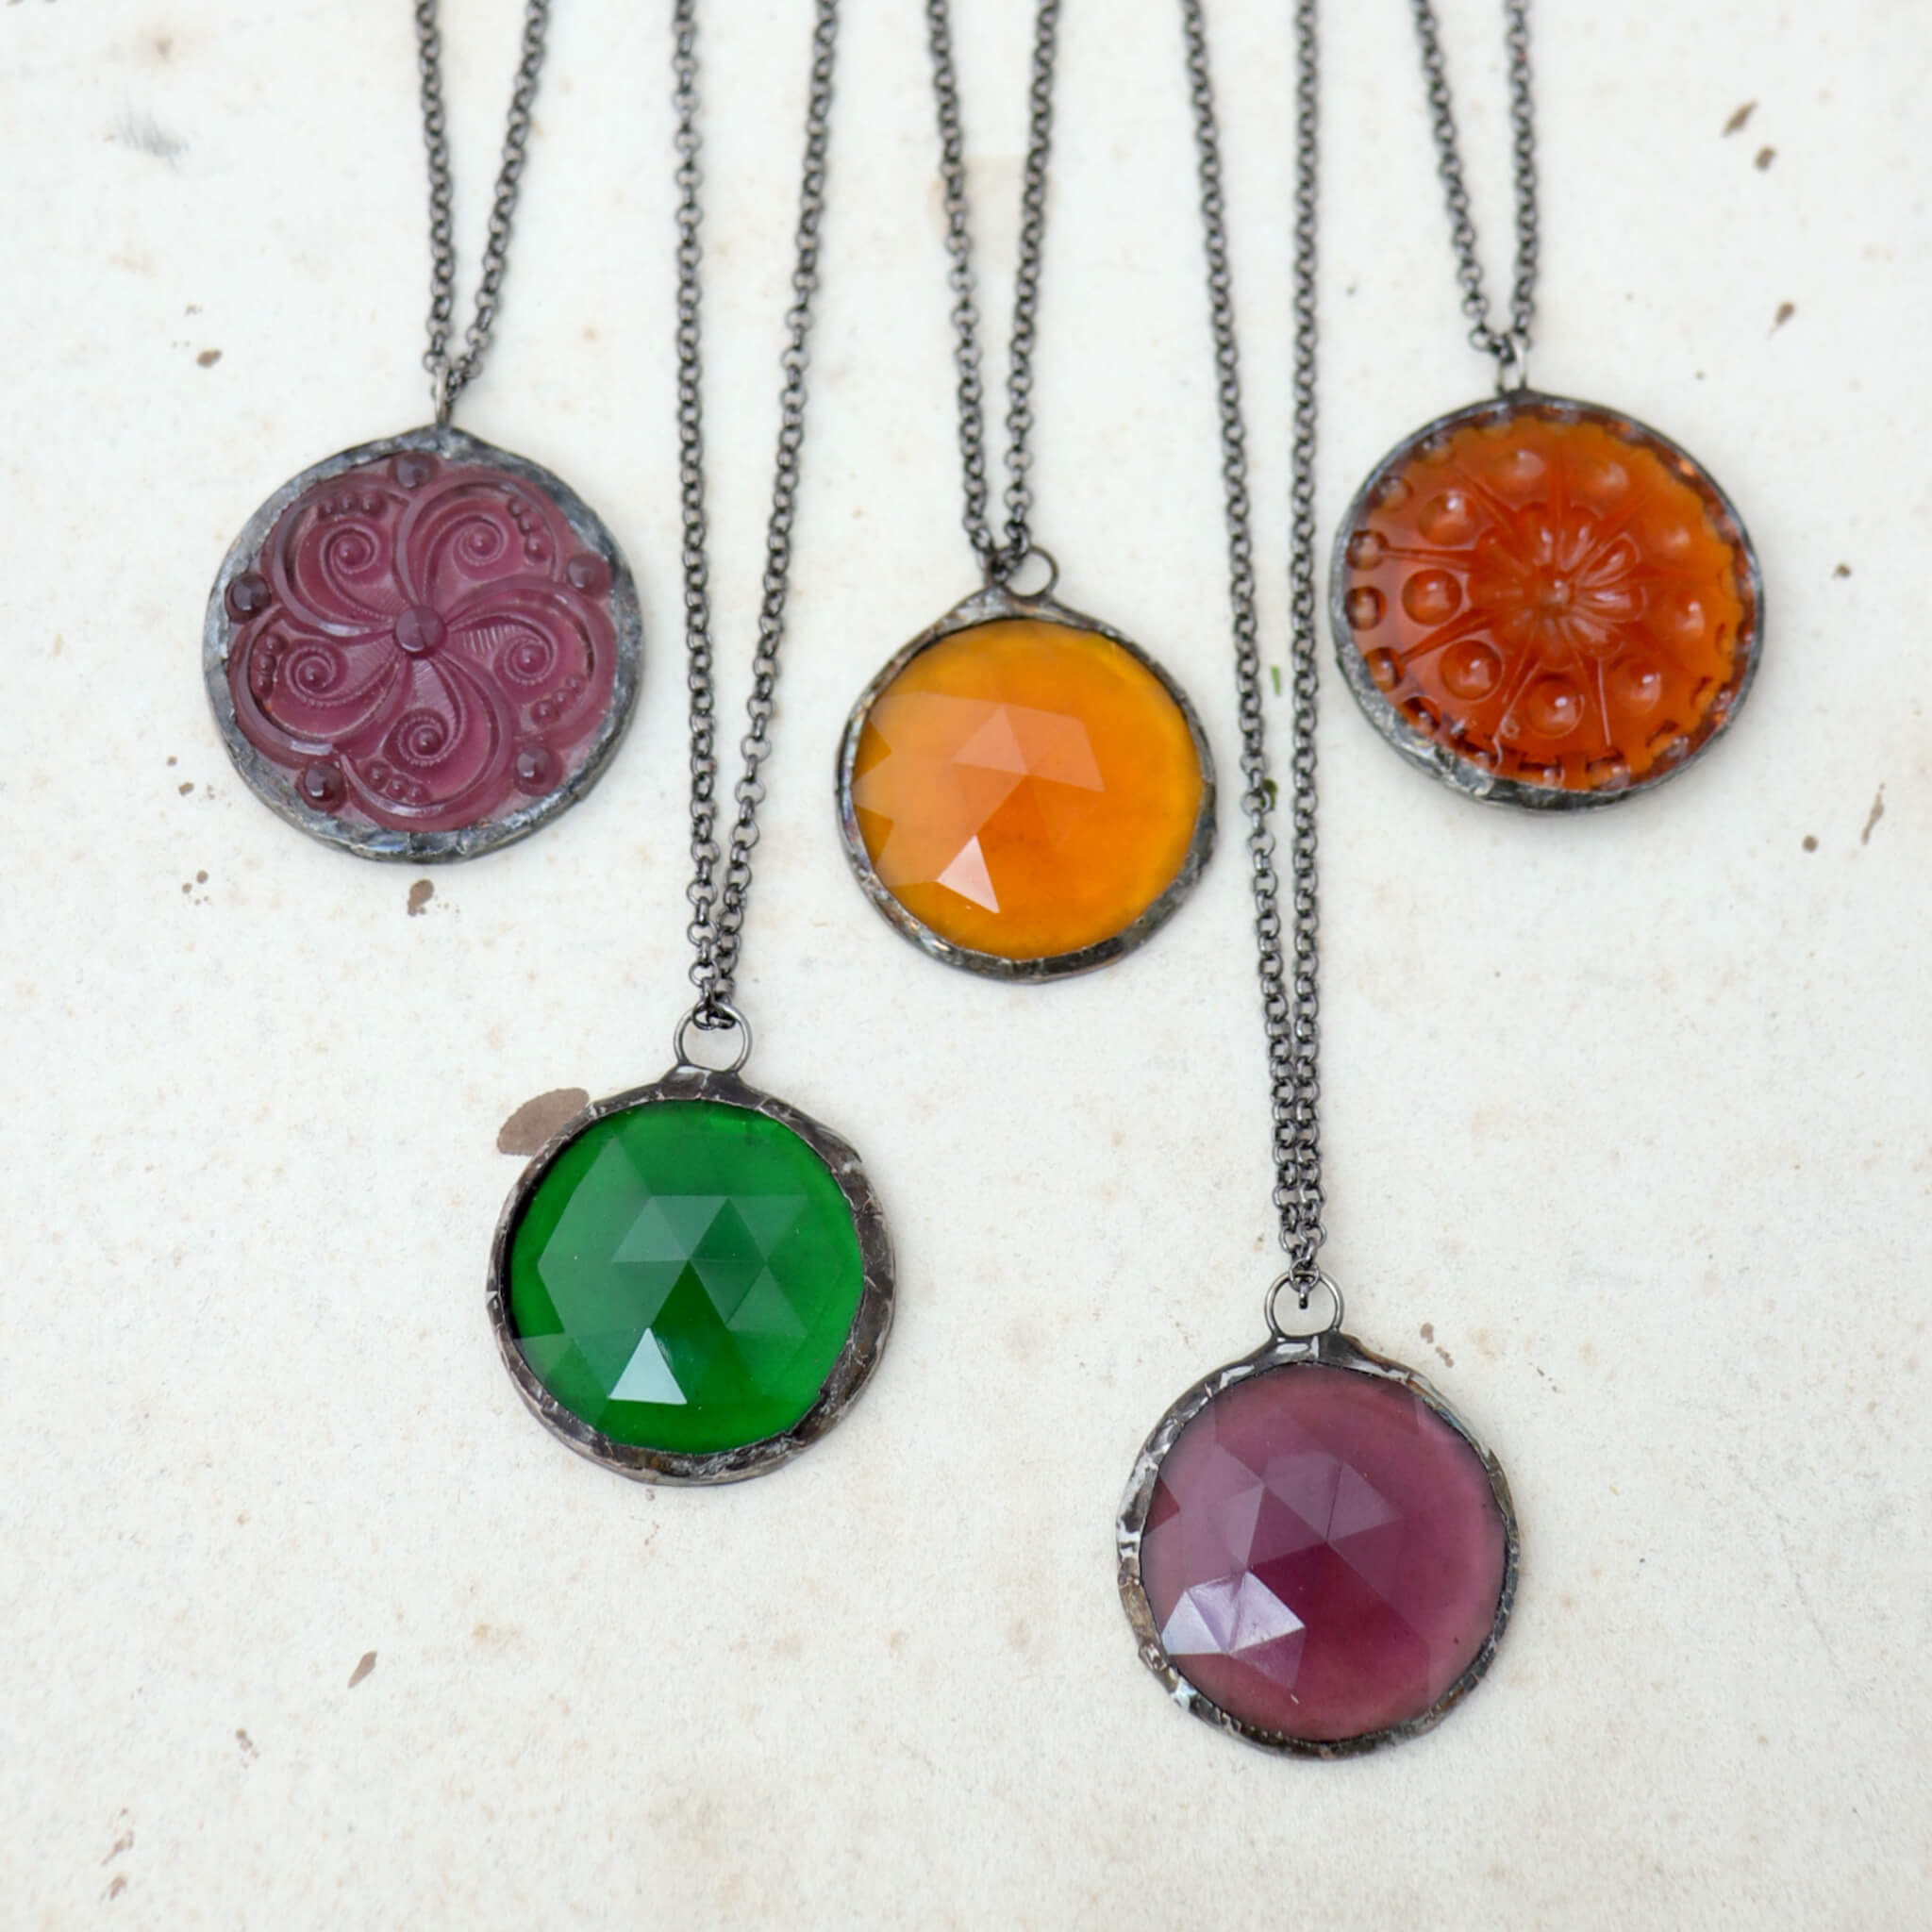 Amethyst, emerald and amber glass soldered into stained glass necklaces